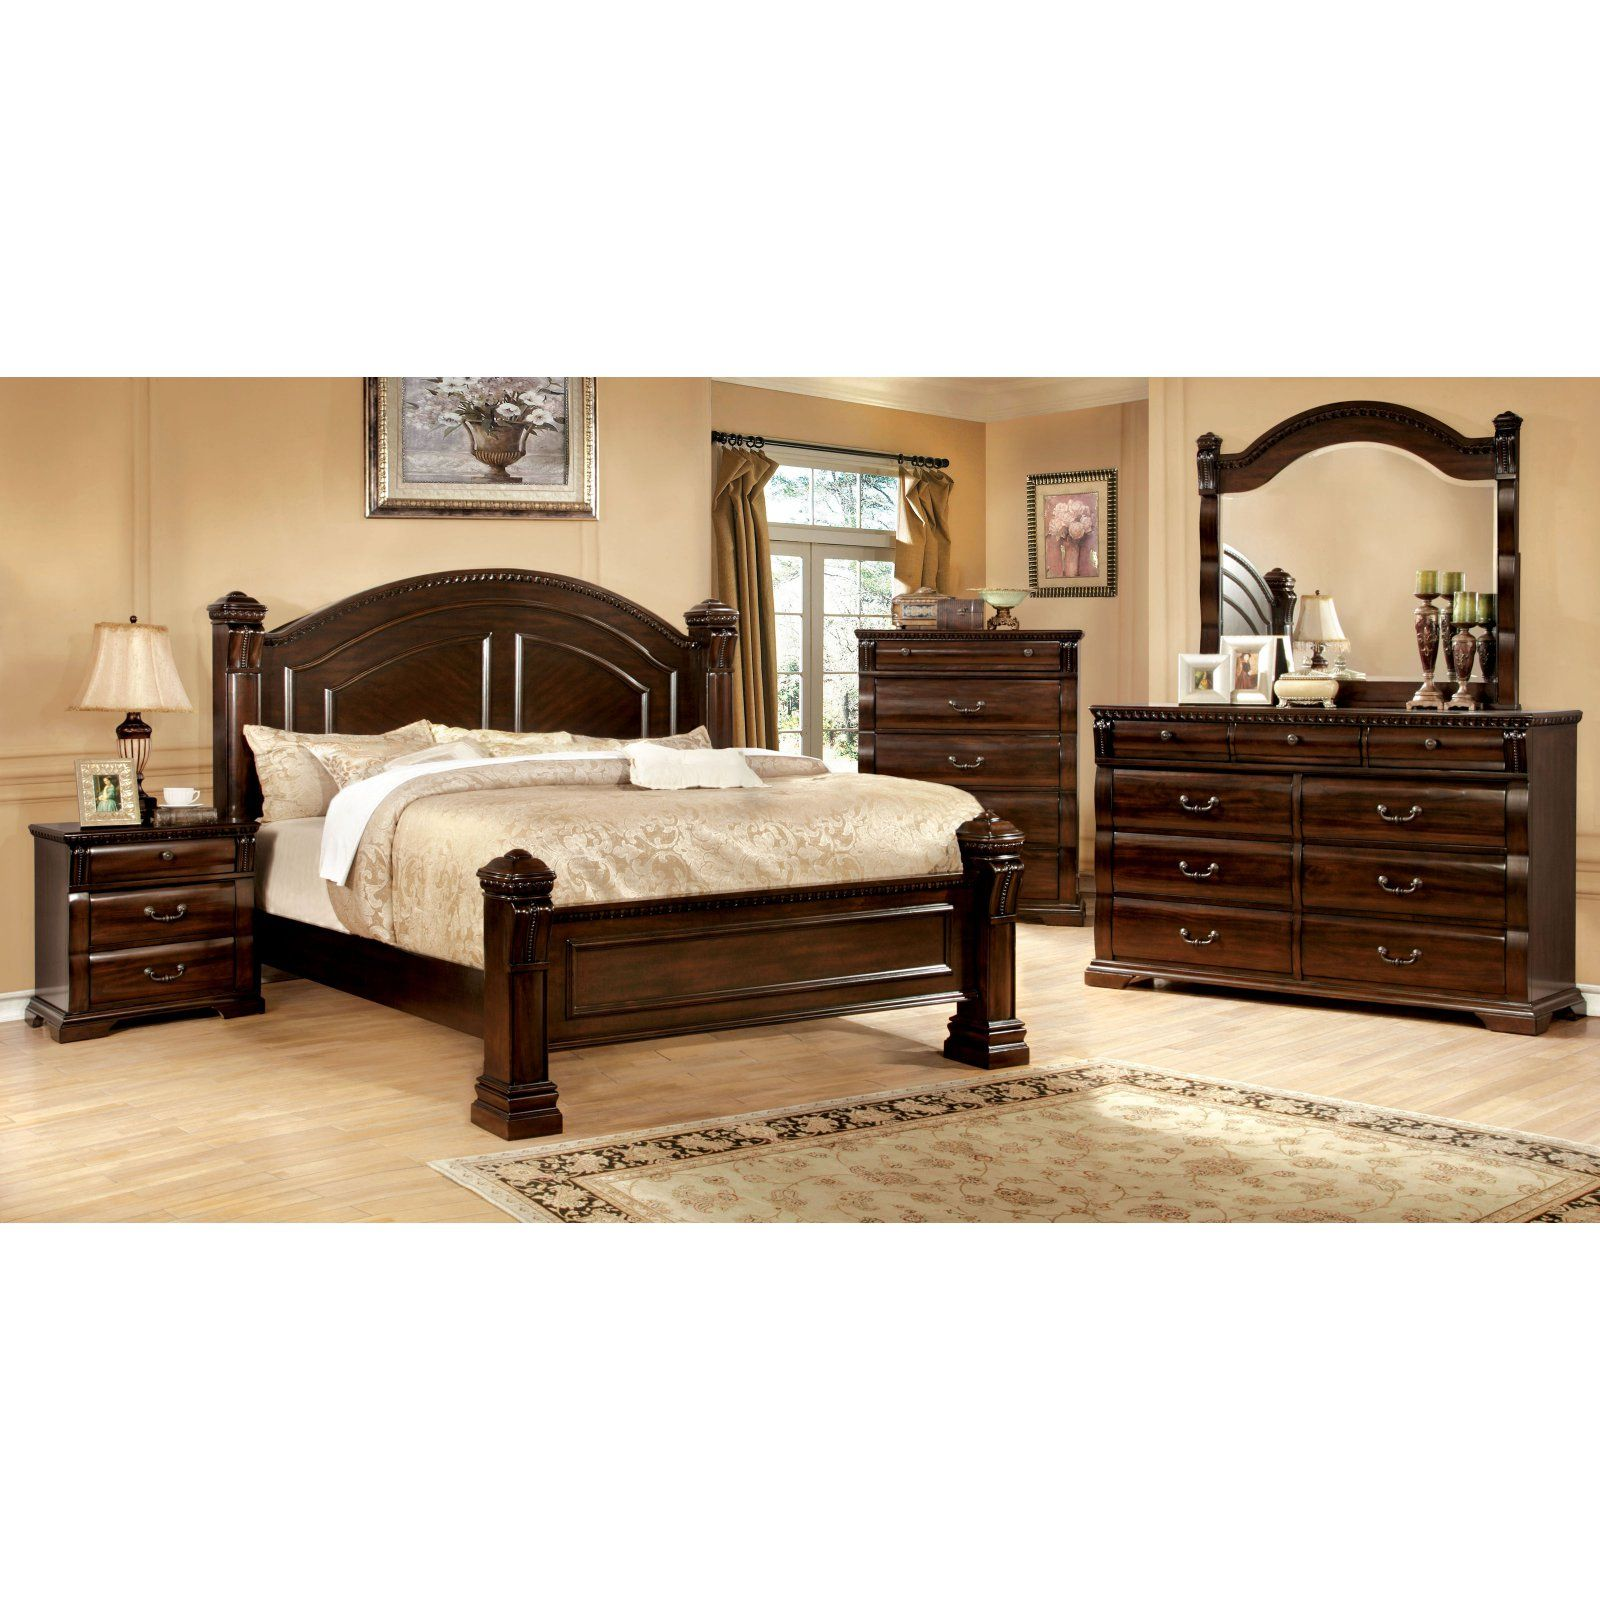 Furniture Of America Agostini Poster Bed Set Bedroom Sets Bedroom Furniture Sets Furniture